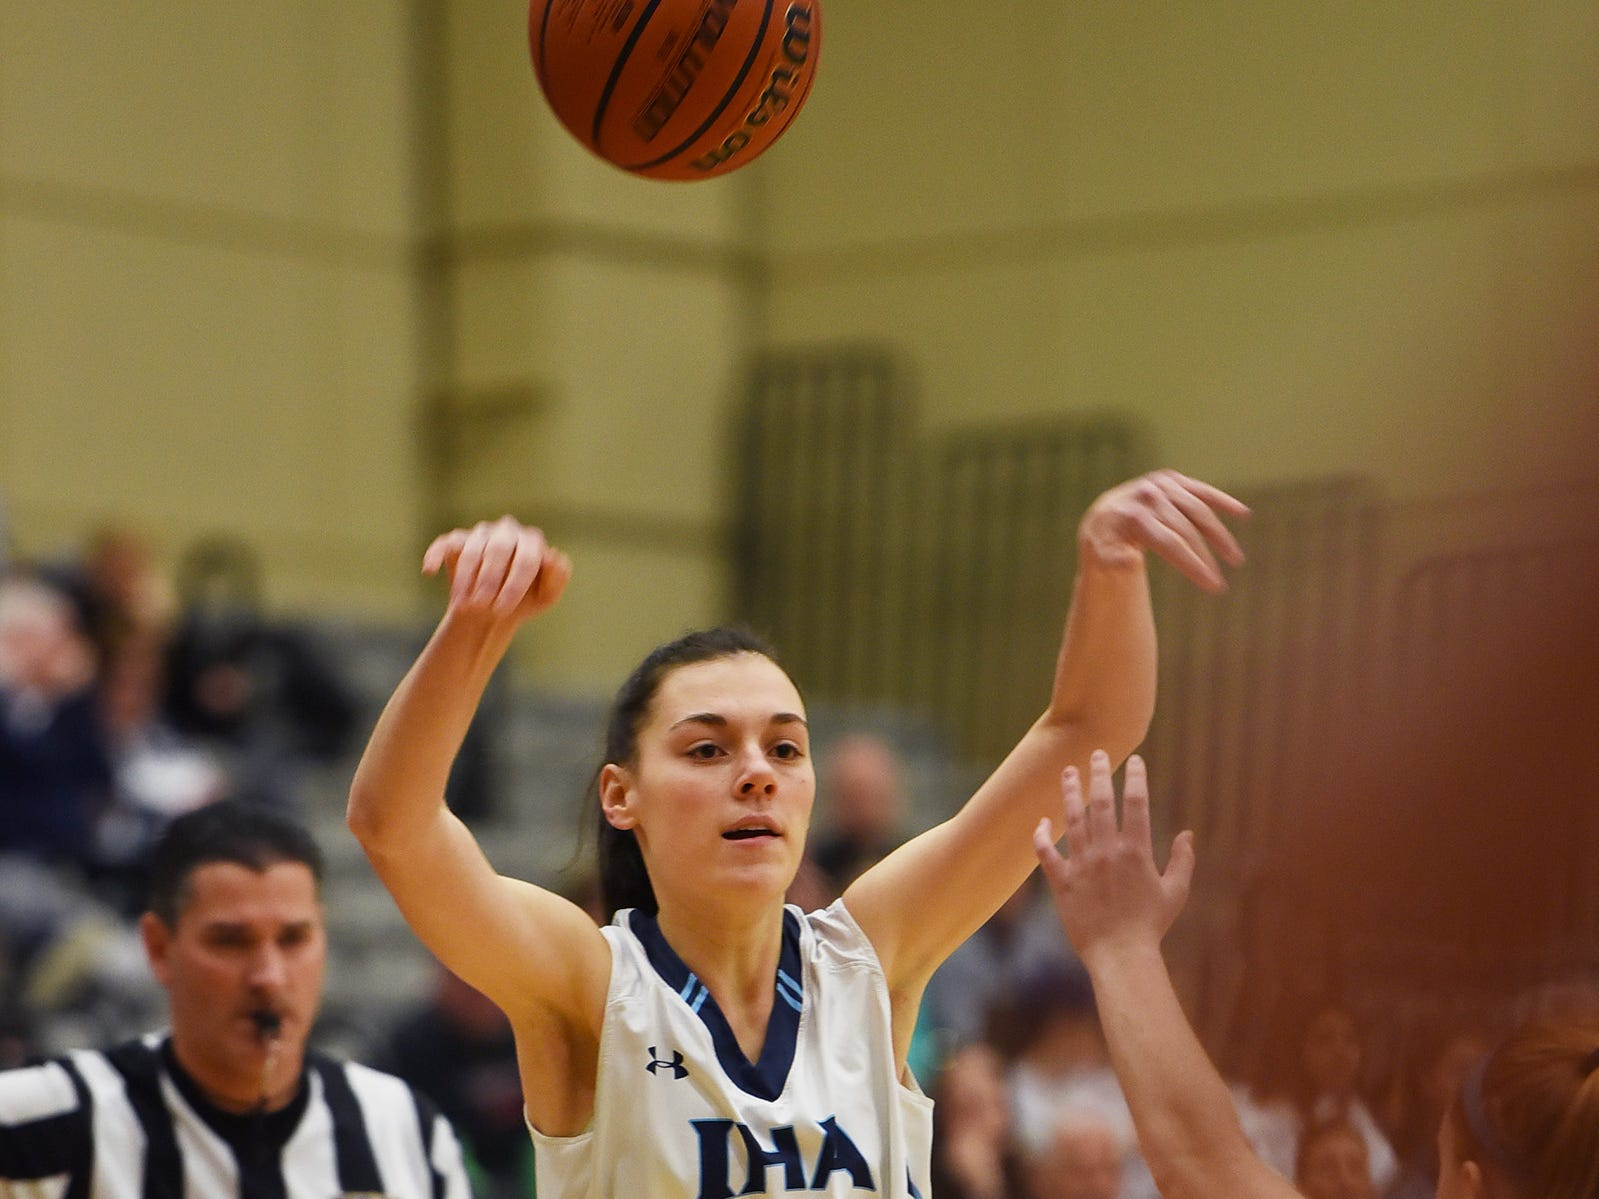 Lexi Edmonds (no. 24) of Immaculate Heart throws a pass against NV/Old Tappan in the first half during the 2019 Bergen County girls basketball championship semifinal at Ramapo College in Mahwah on 02/10/19.